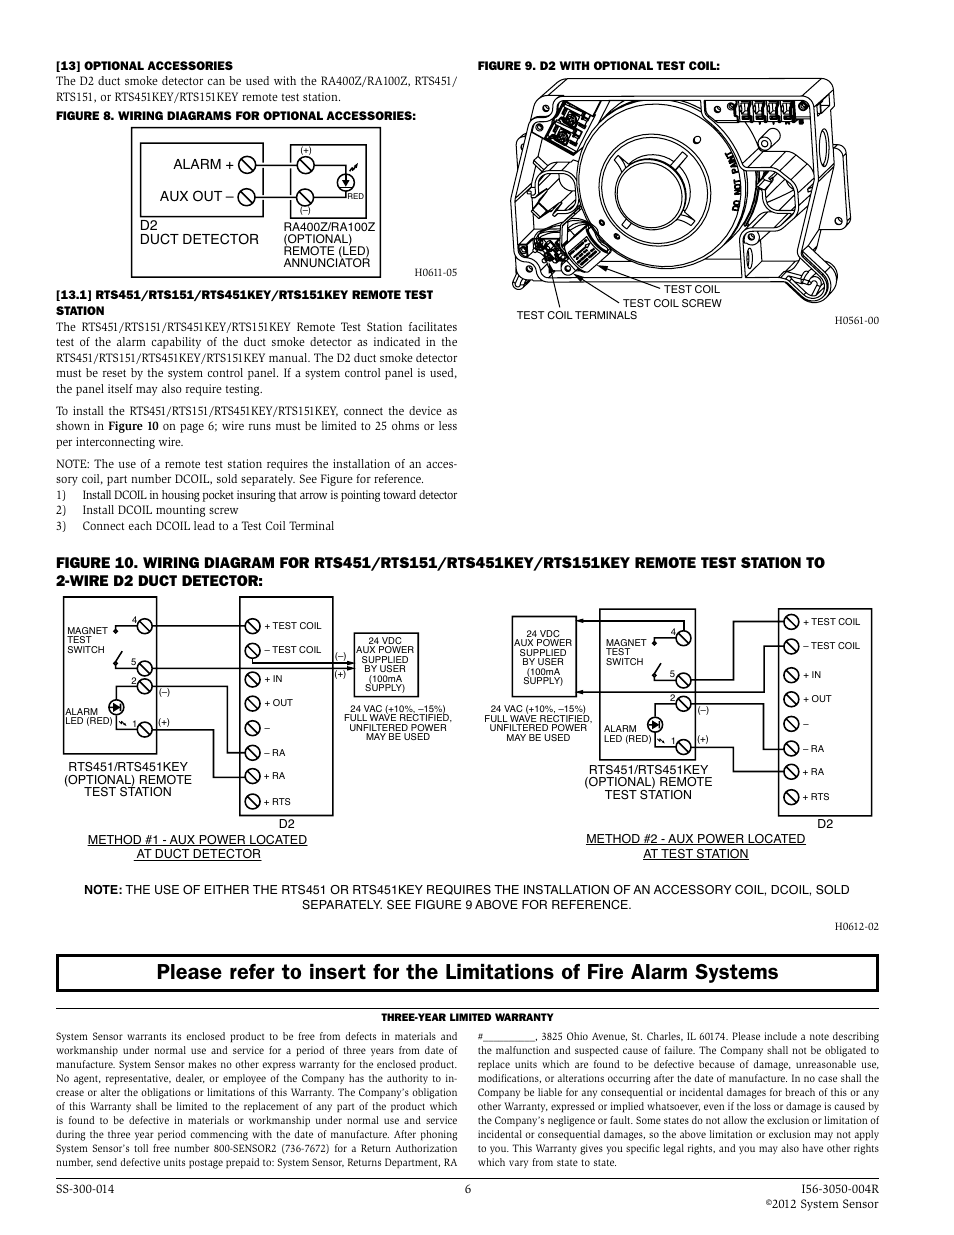 system sensor smoke detector wiring diagram 94 honda civic alarm aux out d2 duct user manual page 6